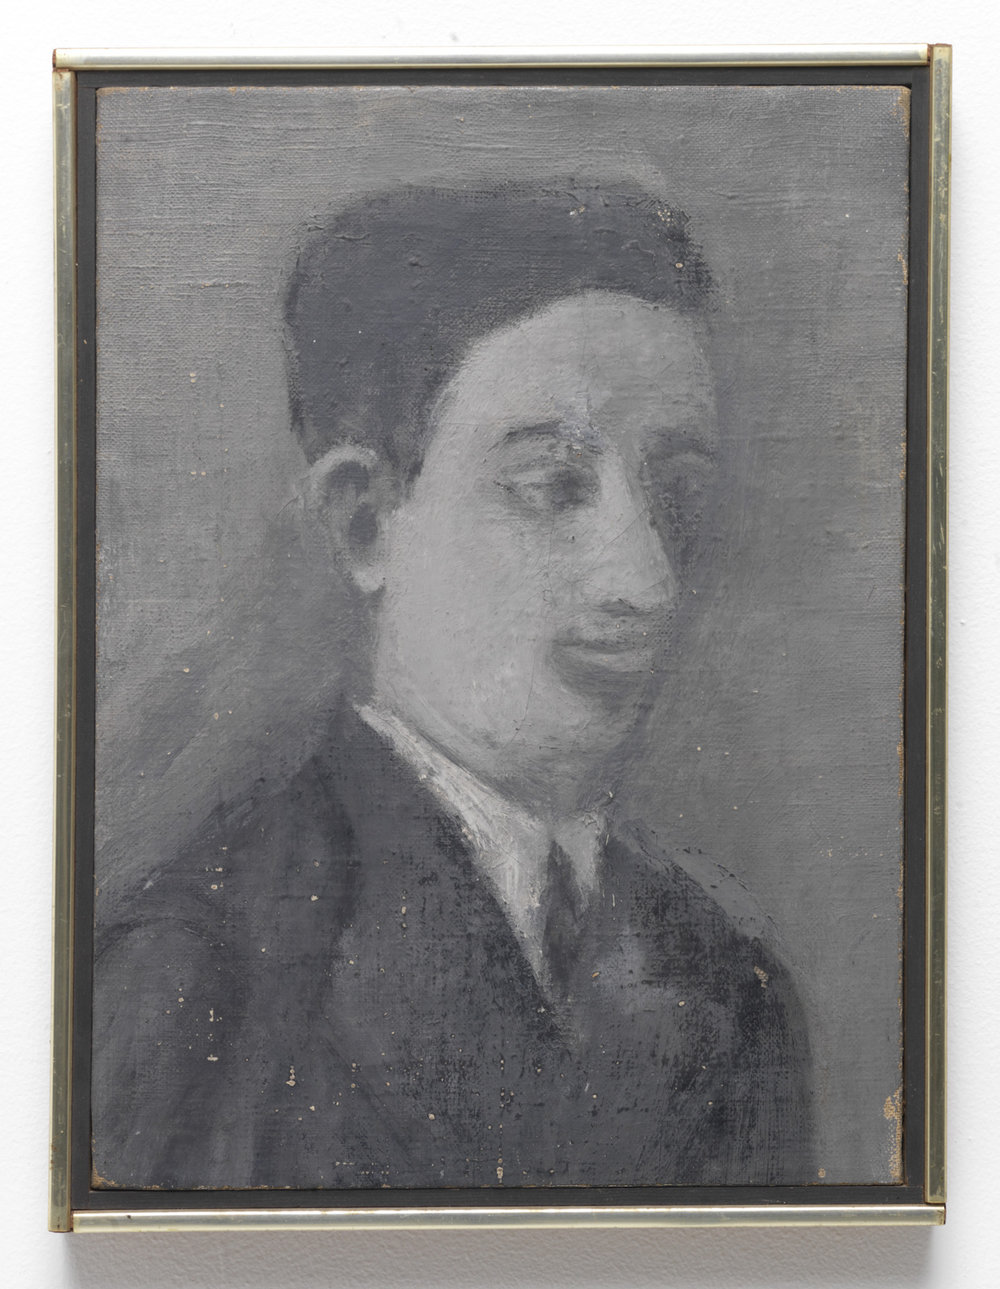 Milton Resnick  Nat , c. 1937 Oil on canvas 15 x 11 inches